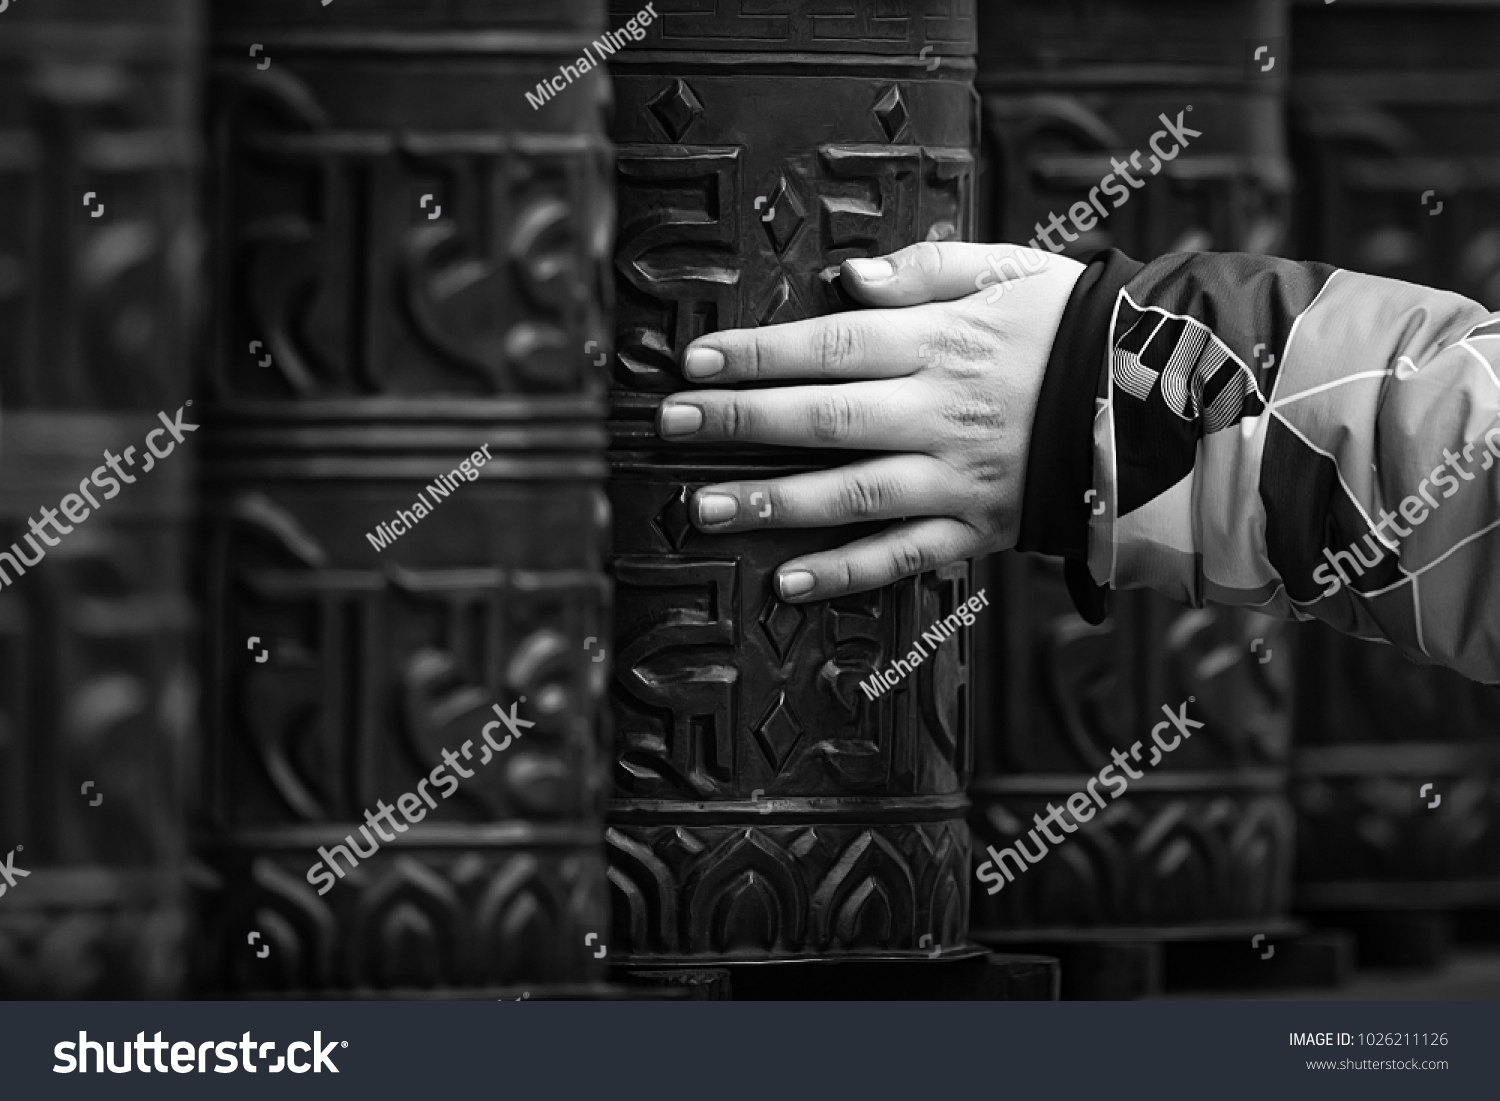 hand is rotaitng prayer wheels in the buddhism tample, black and white